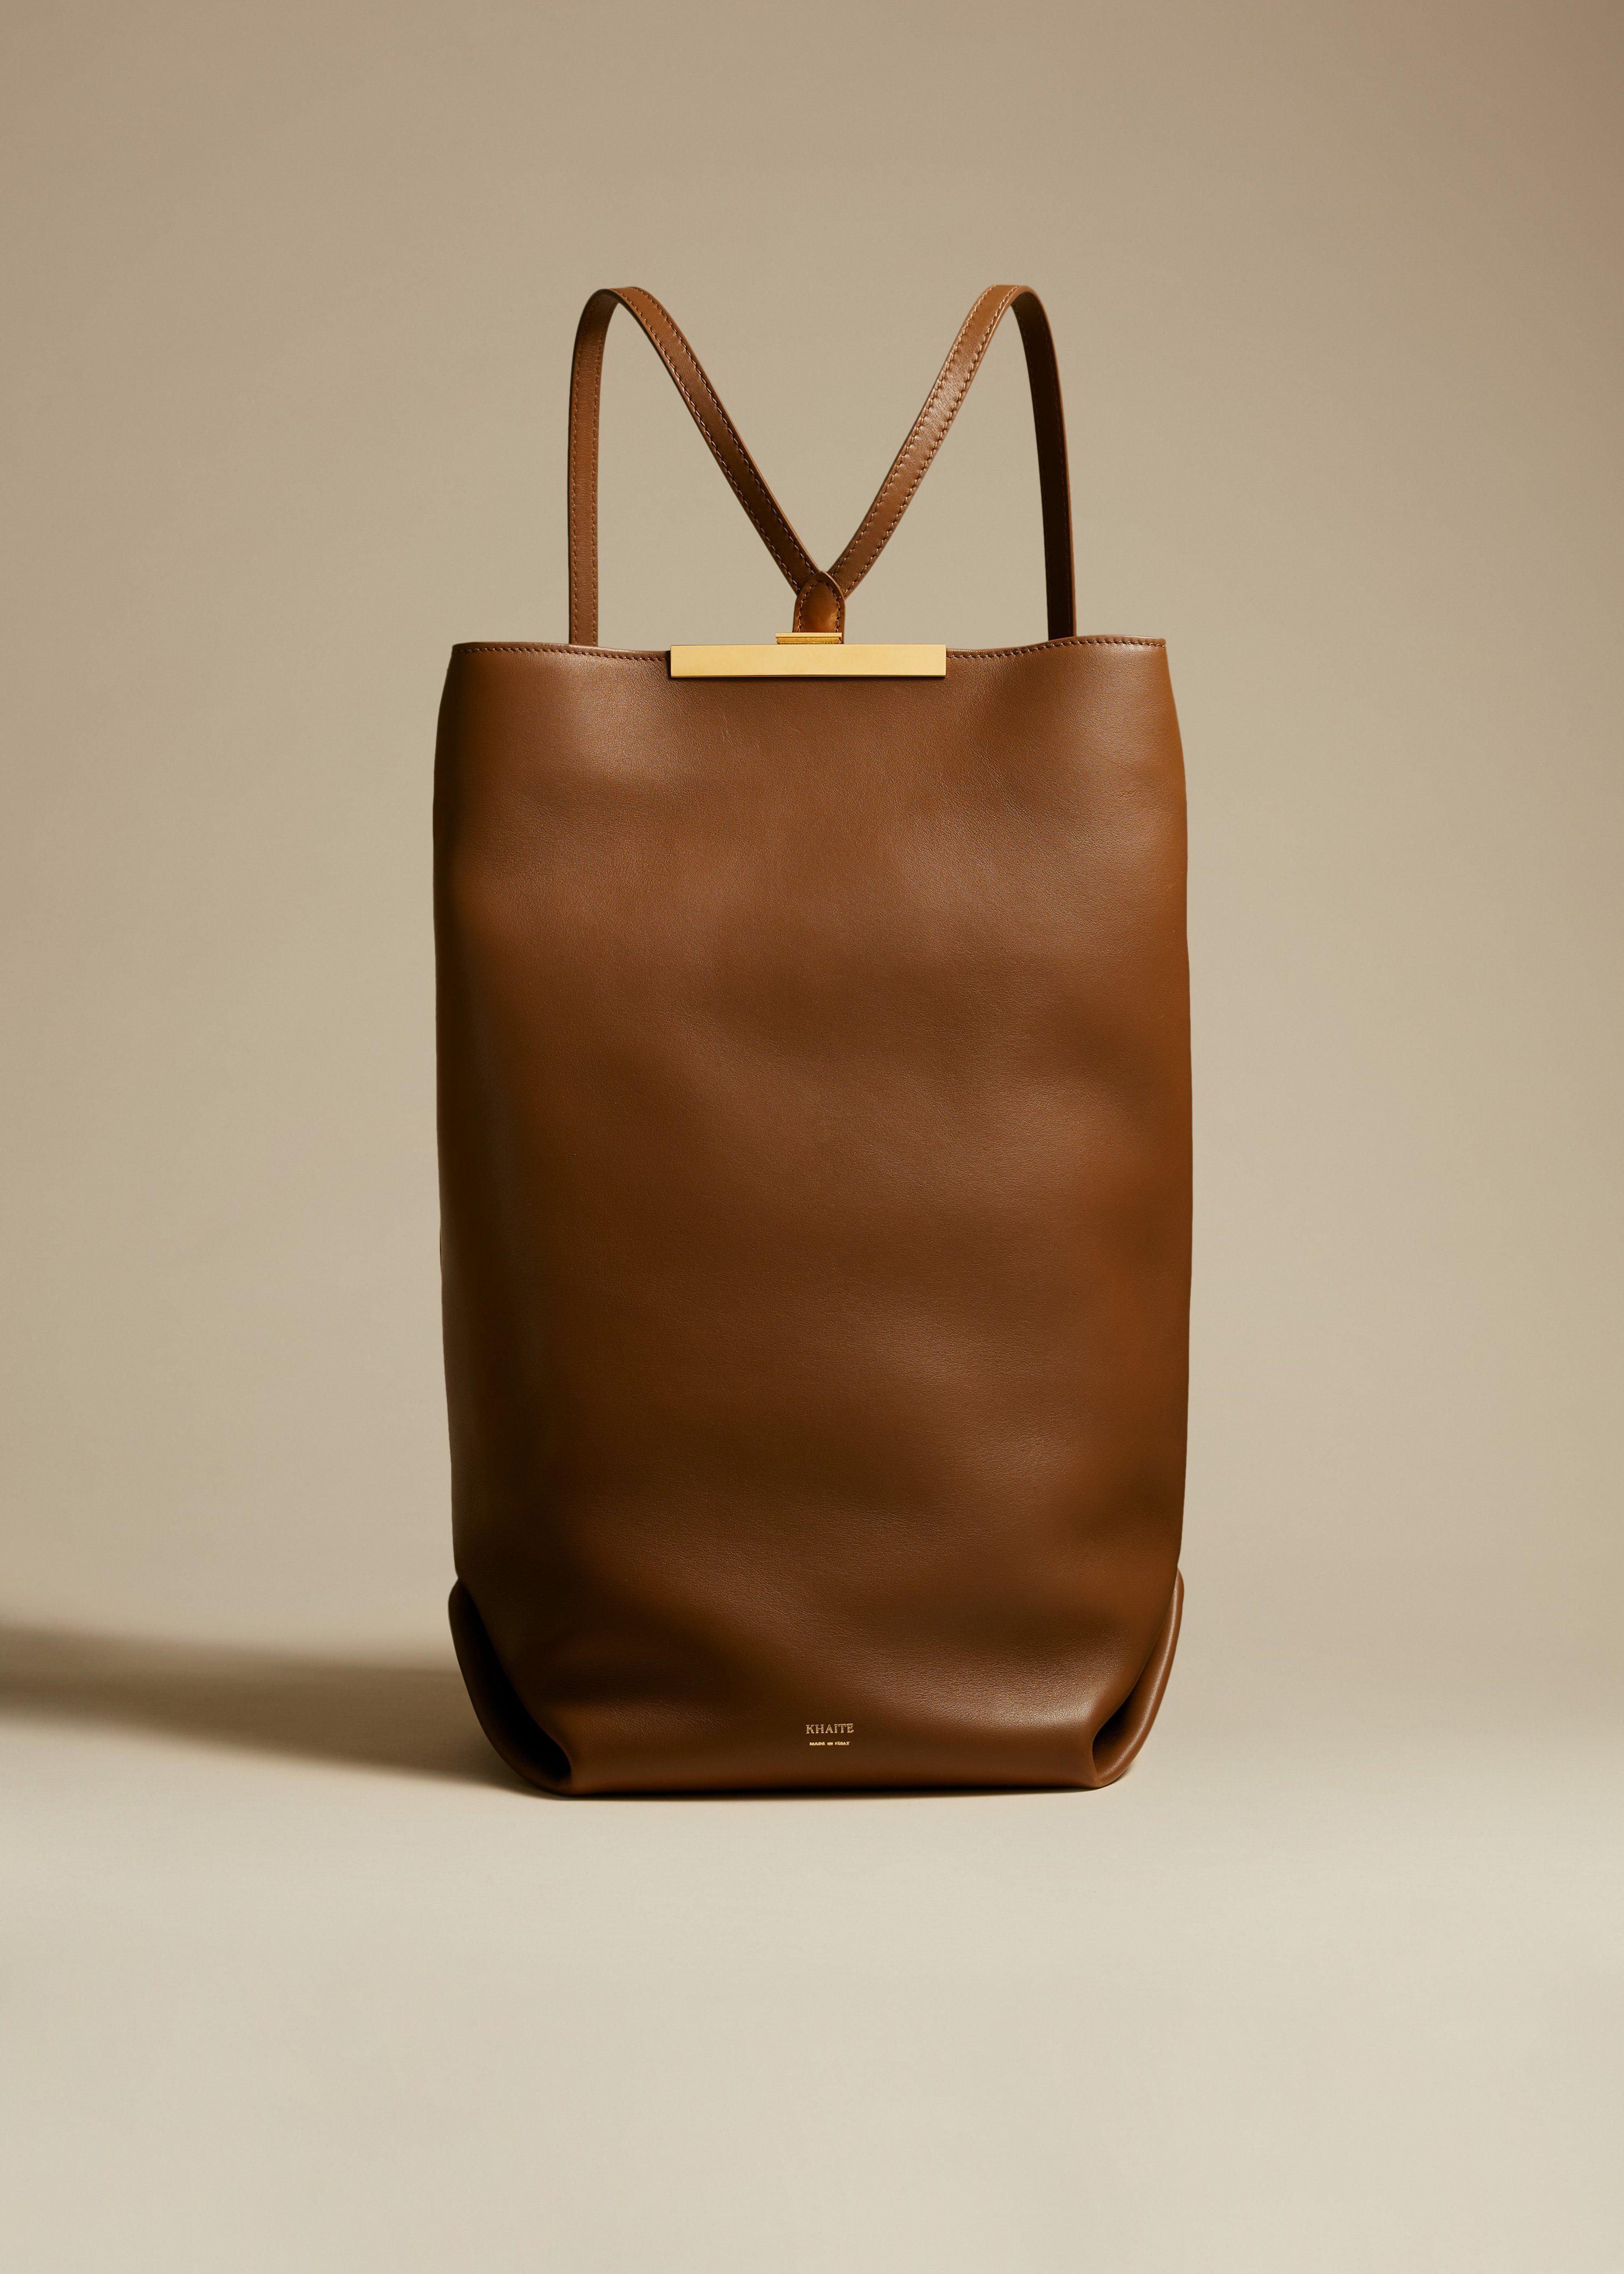 The Iris Backpack in Caramel Leather